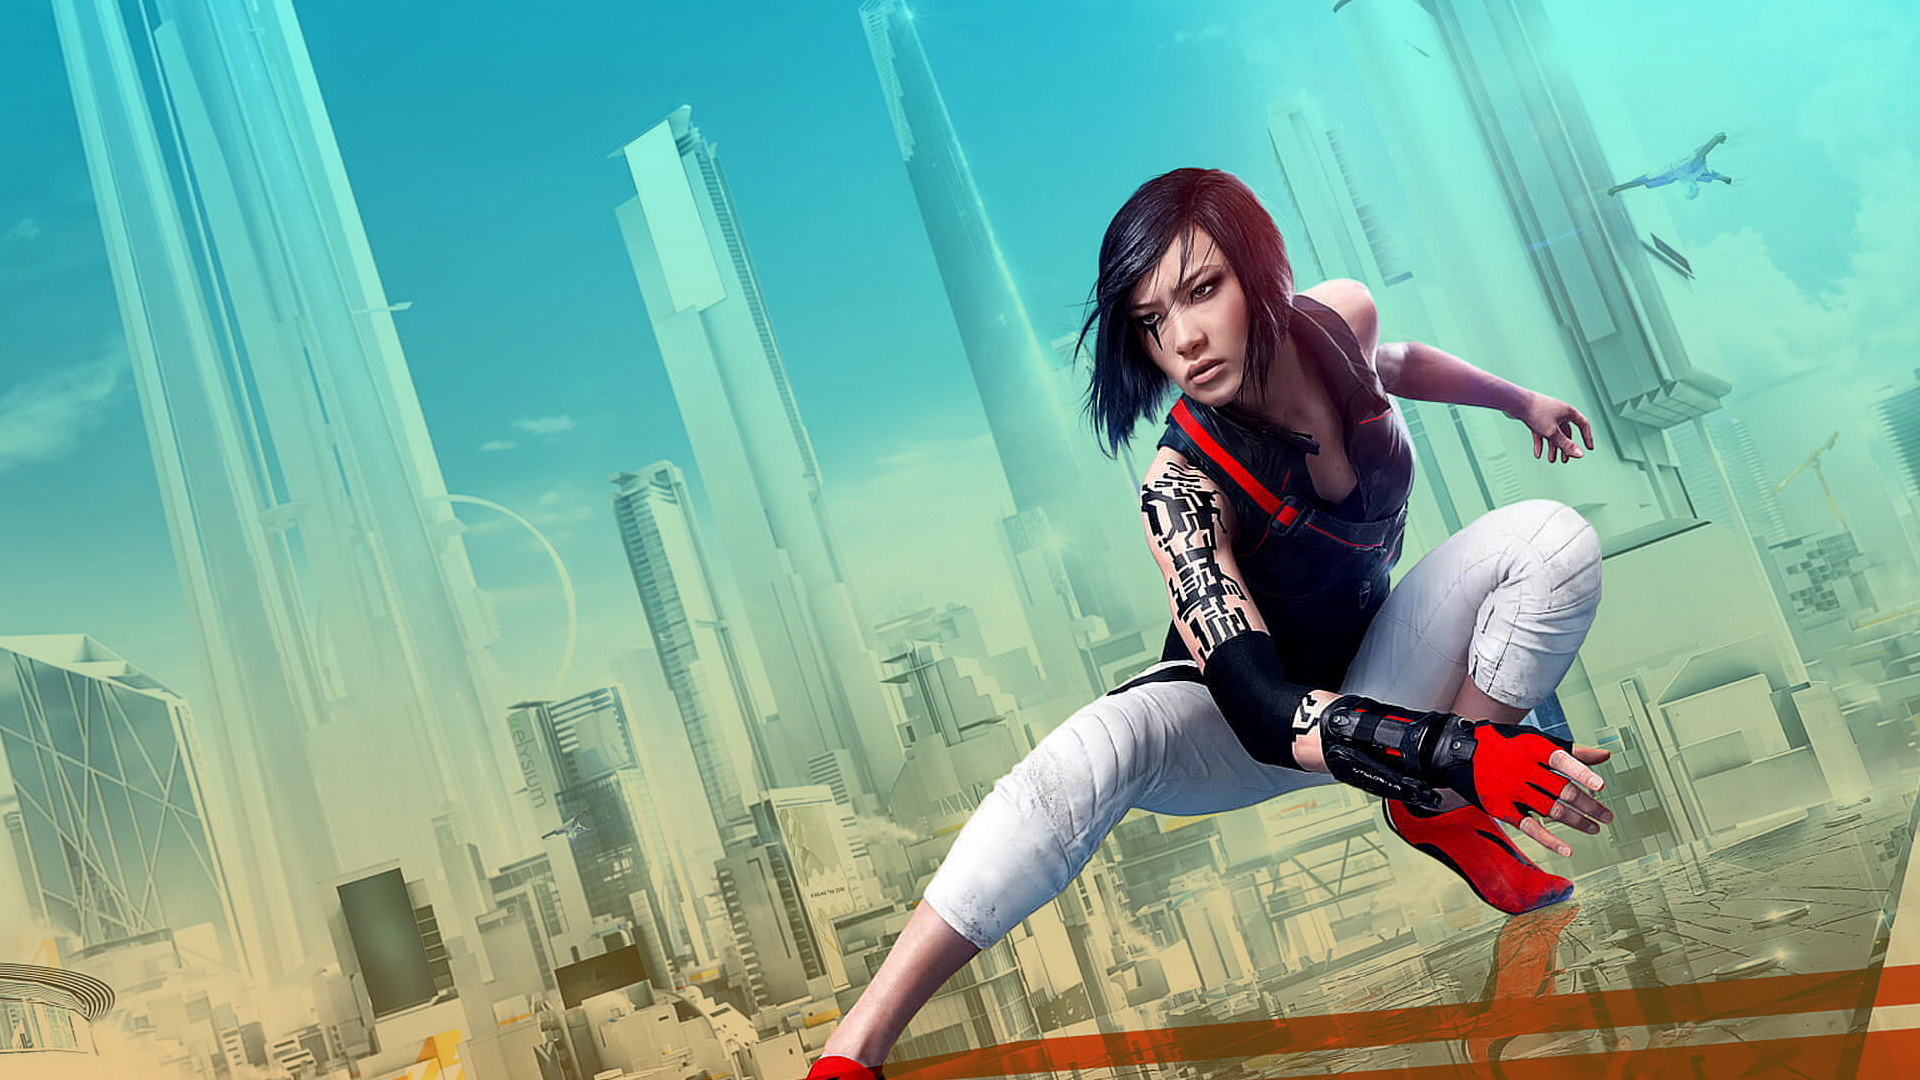 A women crouches down ready for action in front of the skyline of a futuristic city